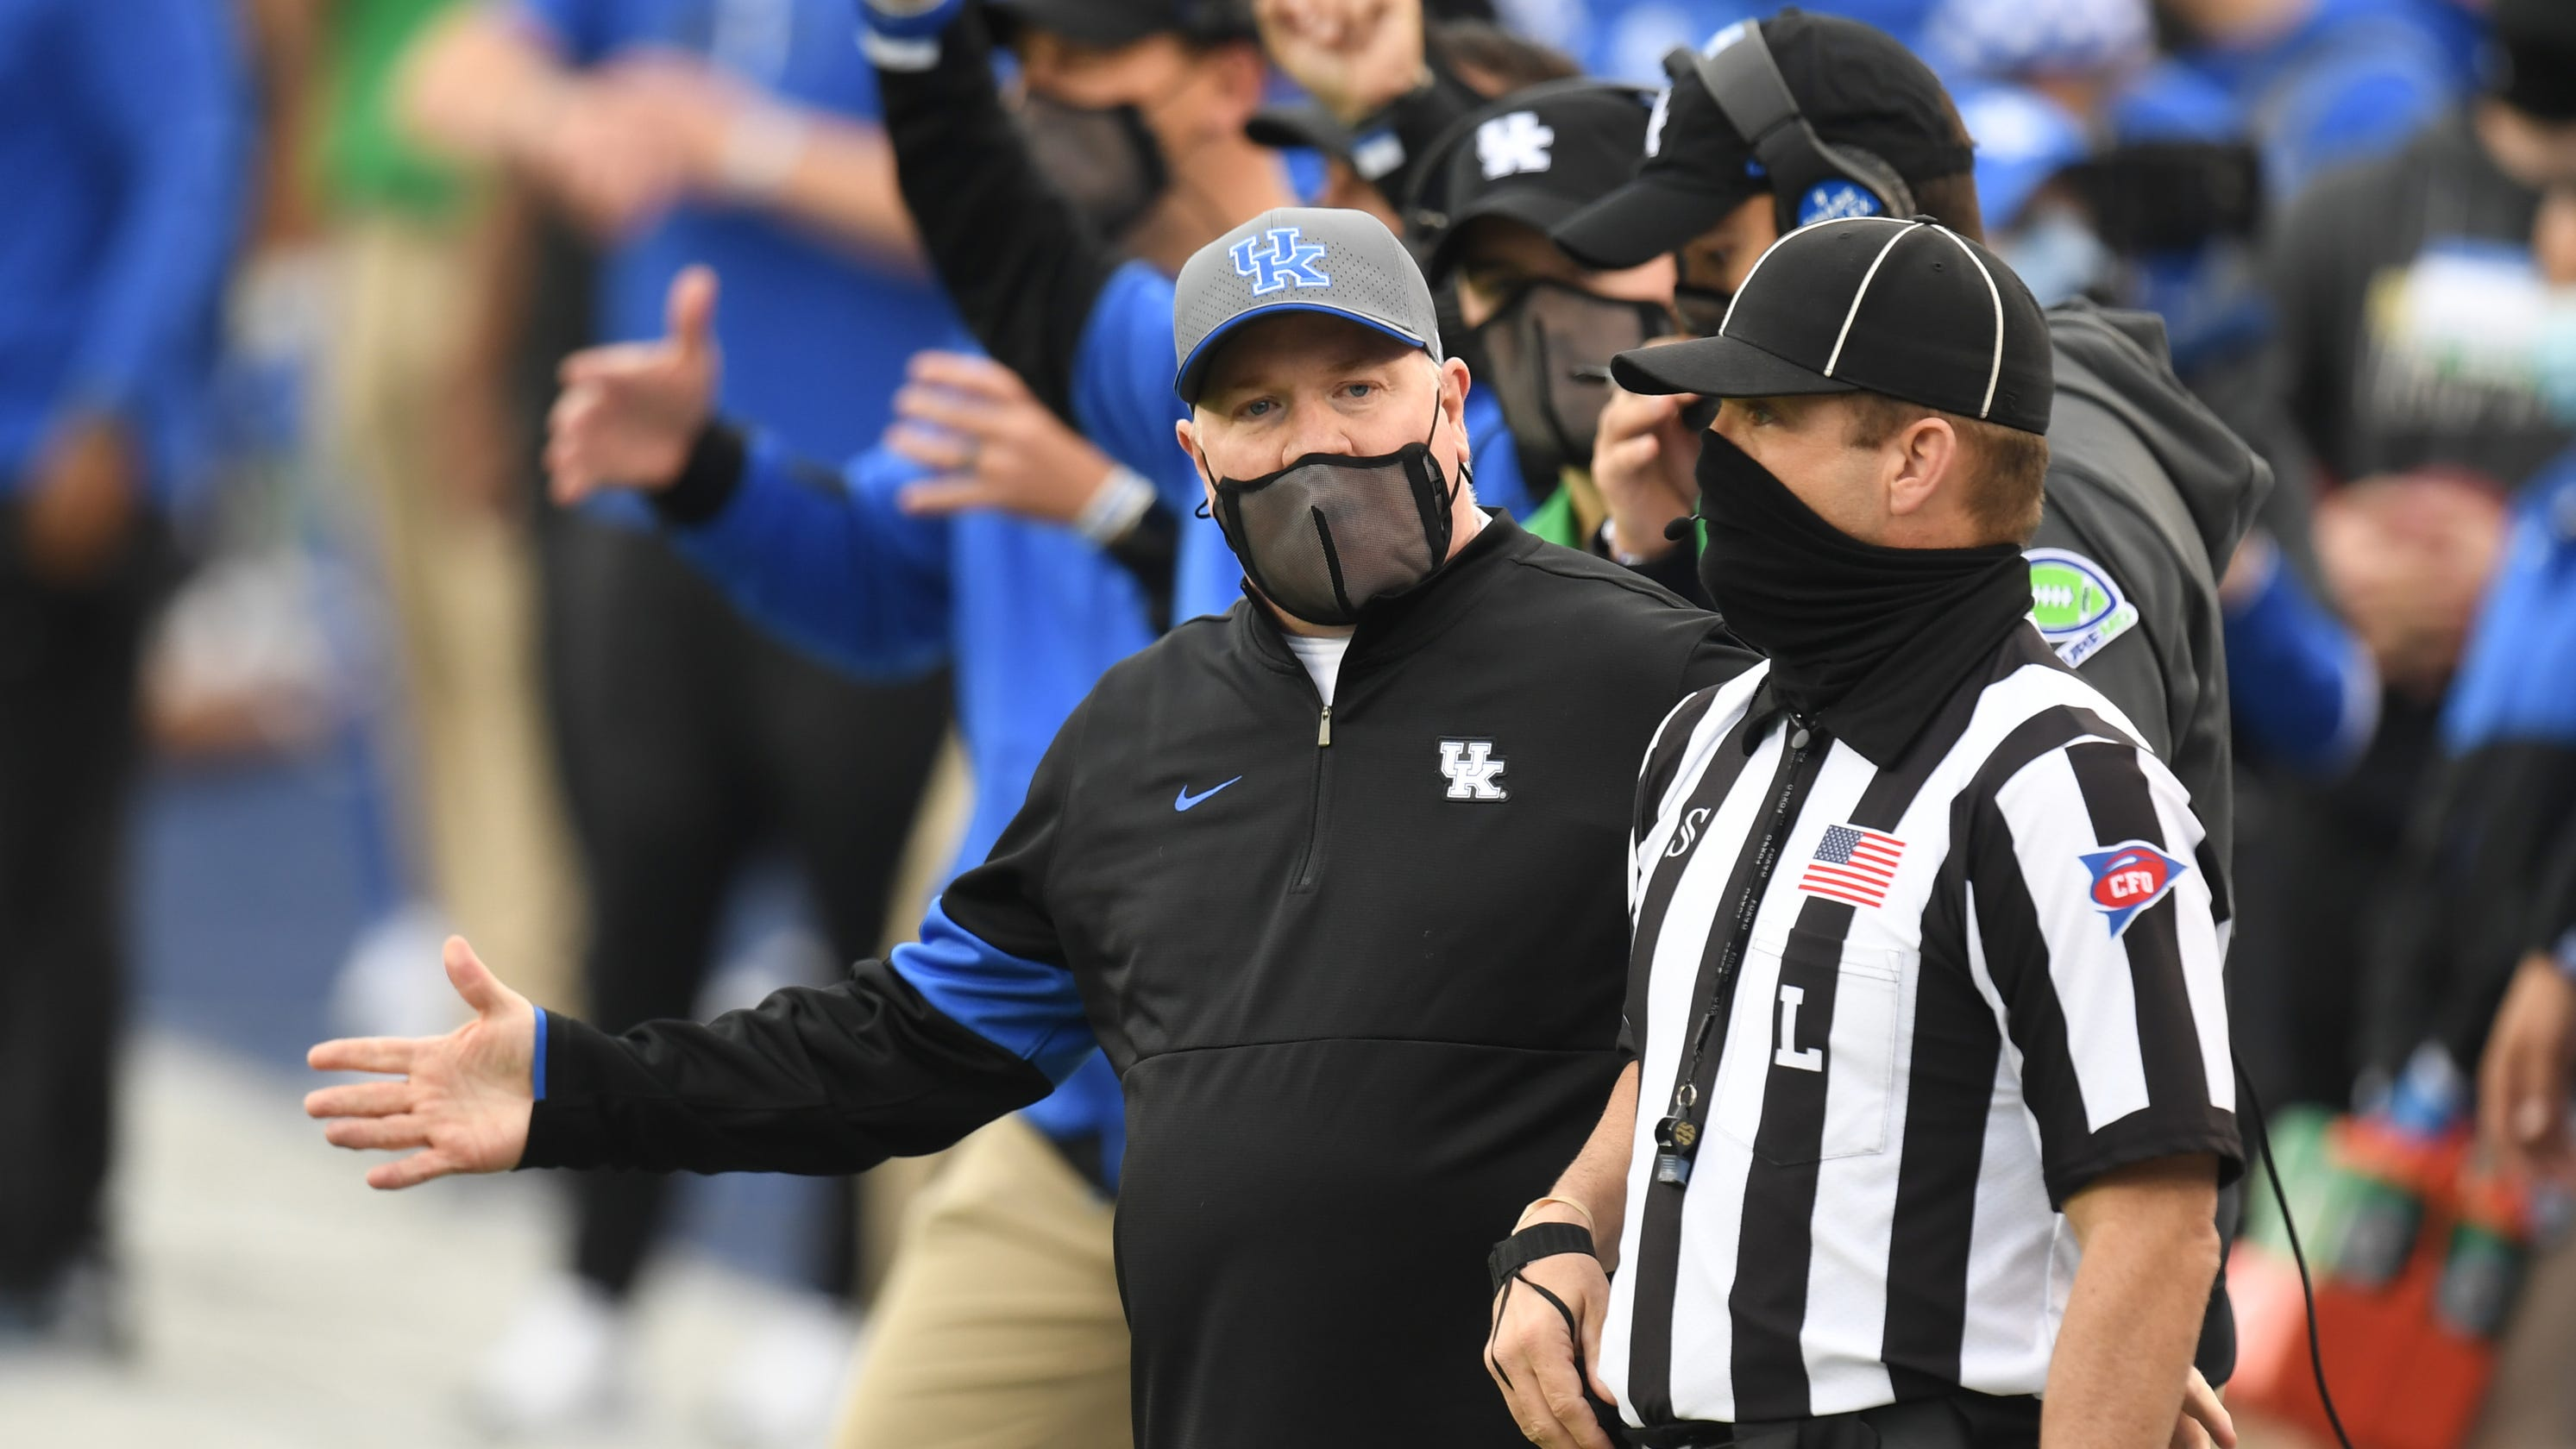 Kentucky football planning to play against Florida despite COVID-19 absences